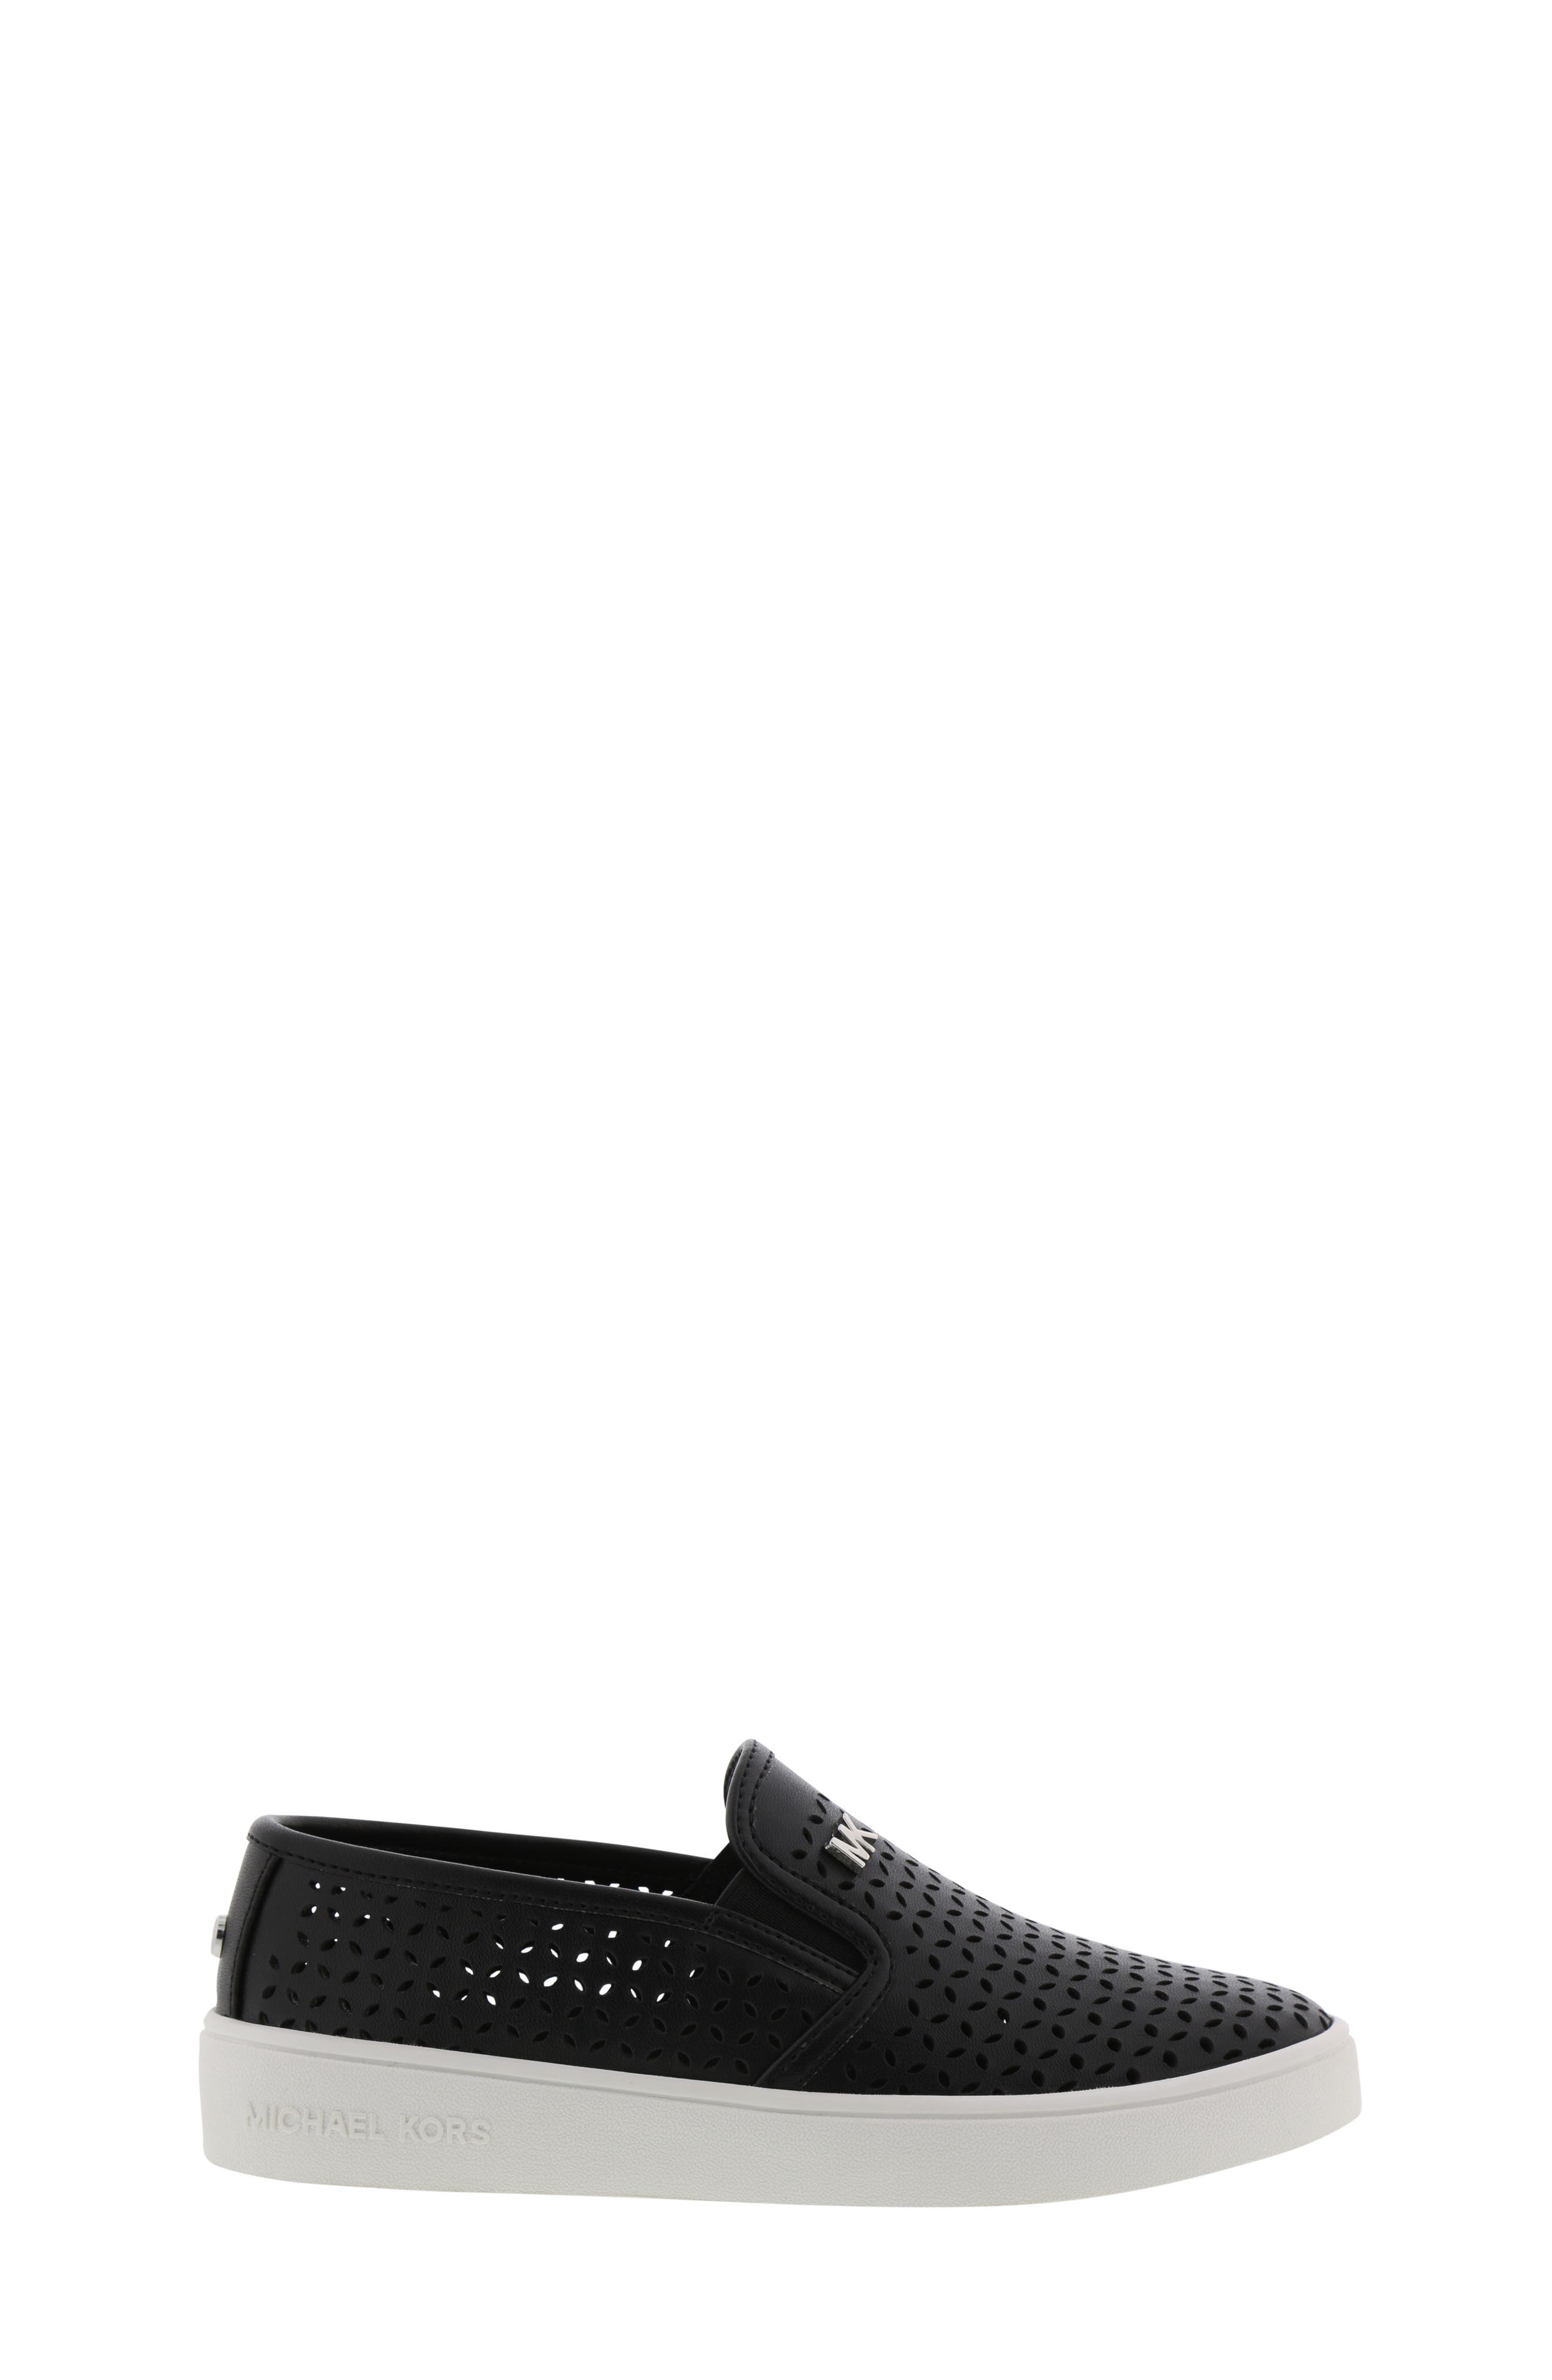 MICHAEL MICHAEL KORS, Jem Olivia Perforated Slip-On Sneaker, Alternate thumbnail 8, color, BLACK